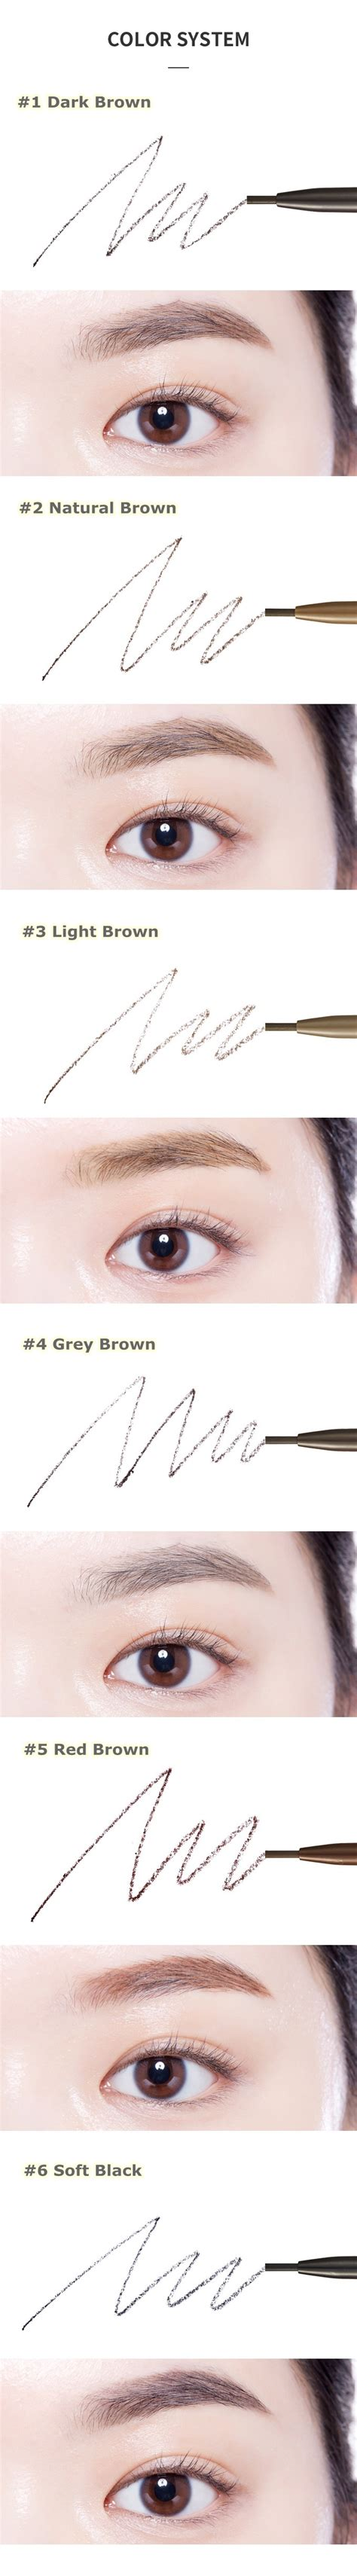 Harga Etude House Drawing etude house drawing eye brow 1dark brown daftar harga